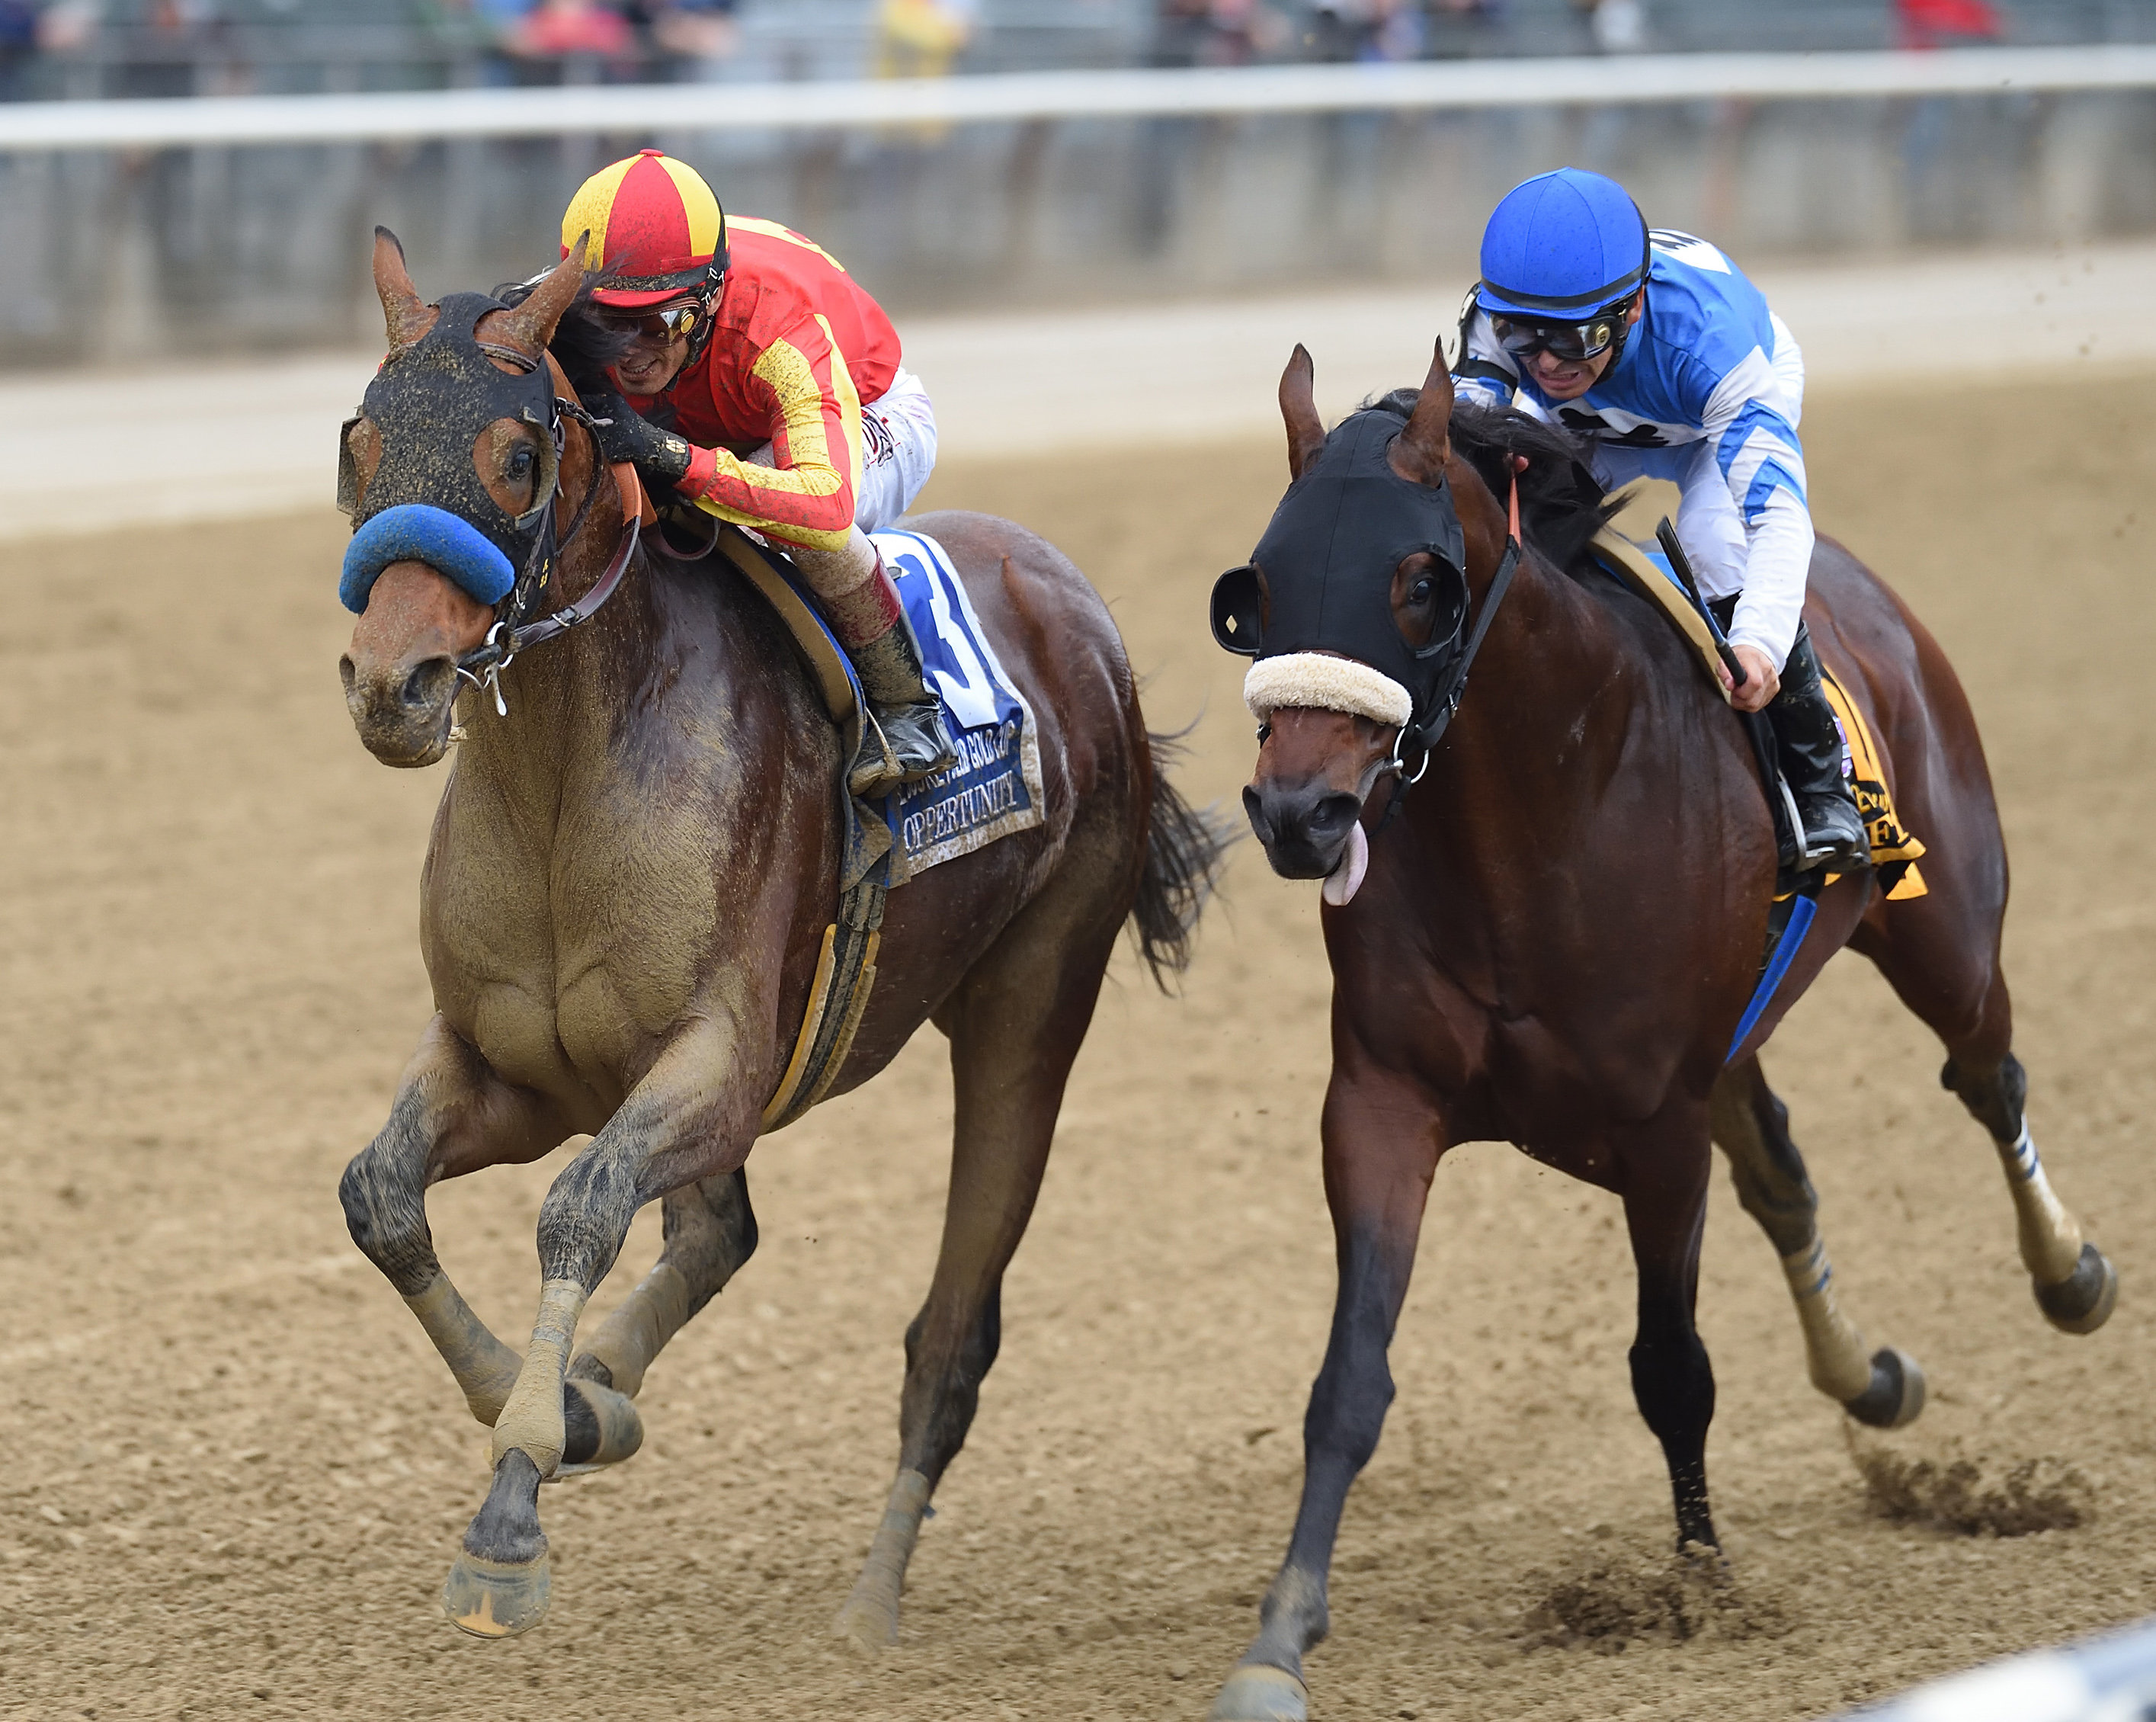 In this image provided by the New York Racing Association, Hoppertunity, left, ridden by John R. Velazquez, wins the Jockey Club Gold Cup horse race Saturday, Oct. 8,2 016, at Belmont Park in Elmont, N.Y. (Chelsea Durand/NYRA via AP)